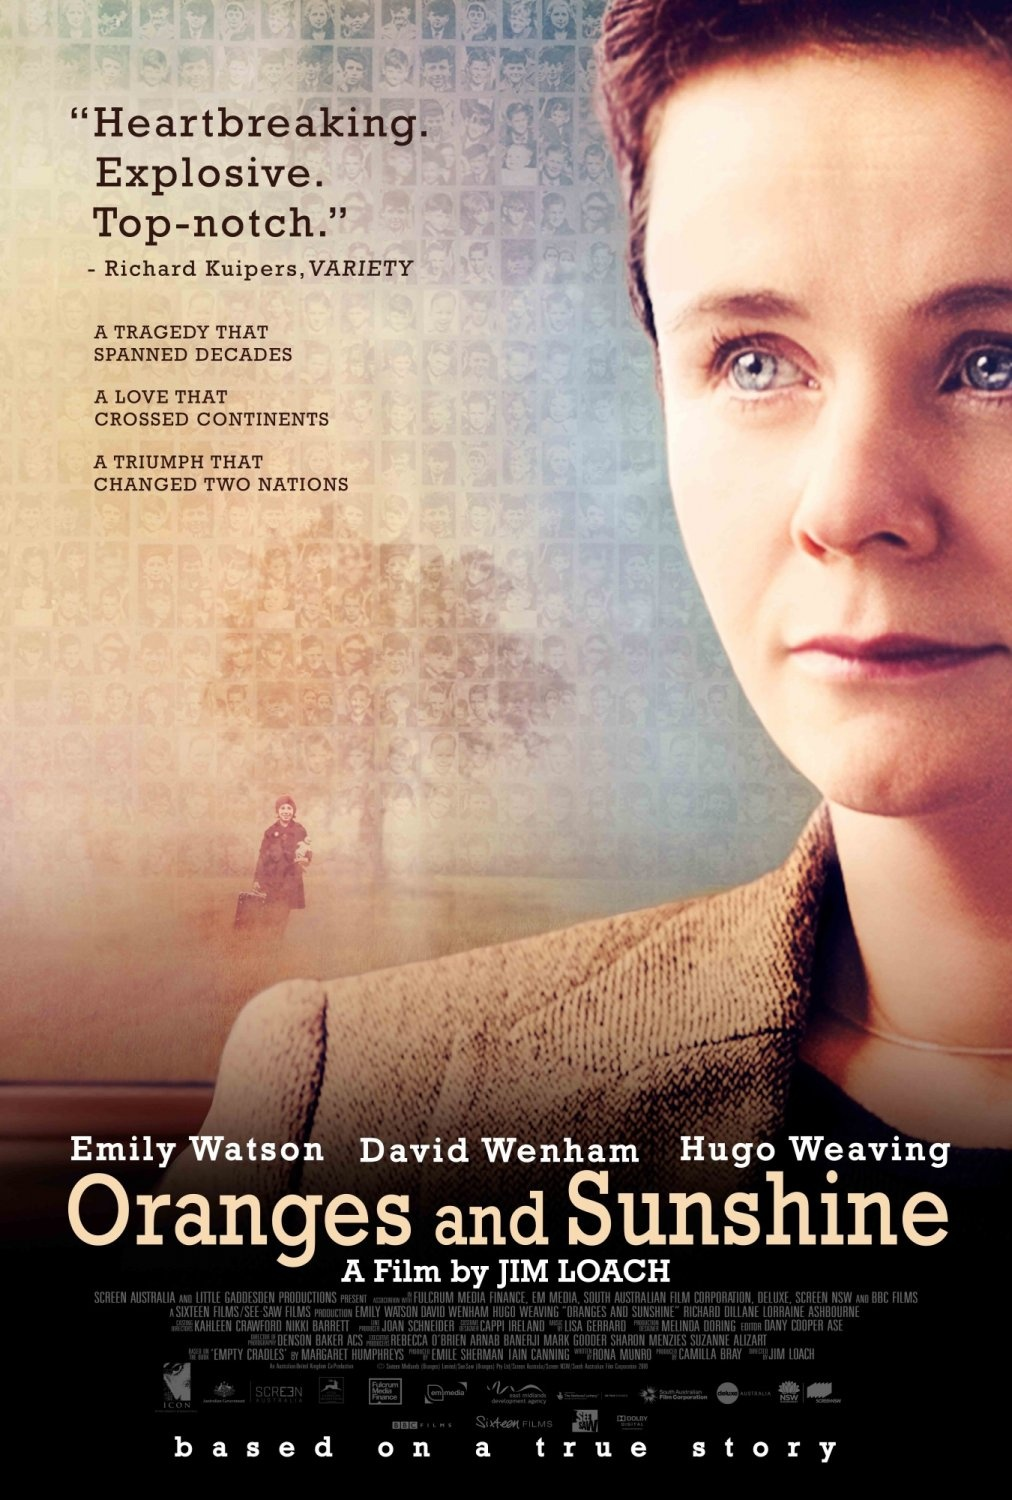 Friday Night at the Movies – Oranges and Sunshine